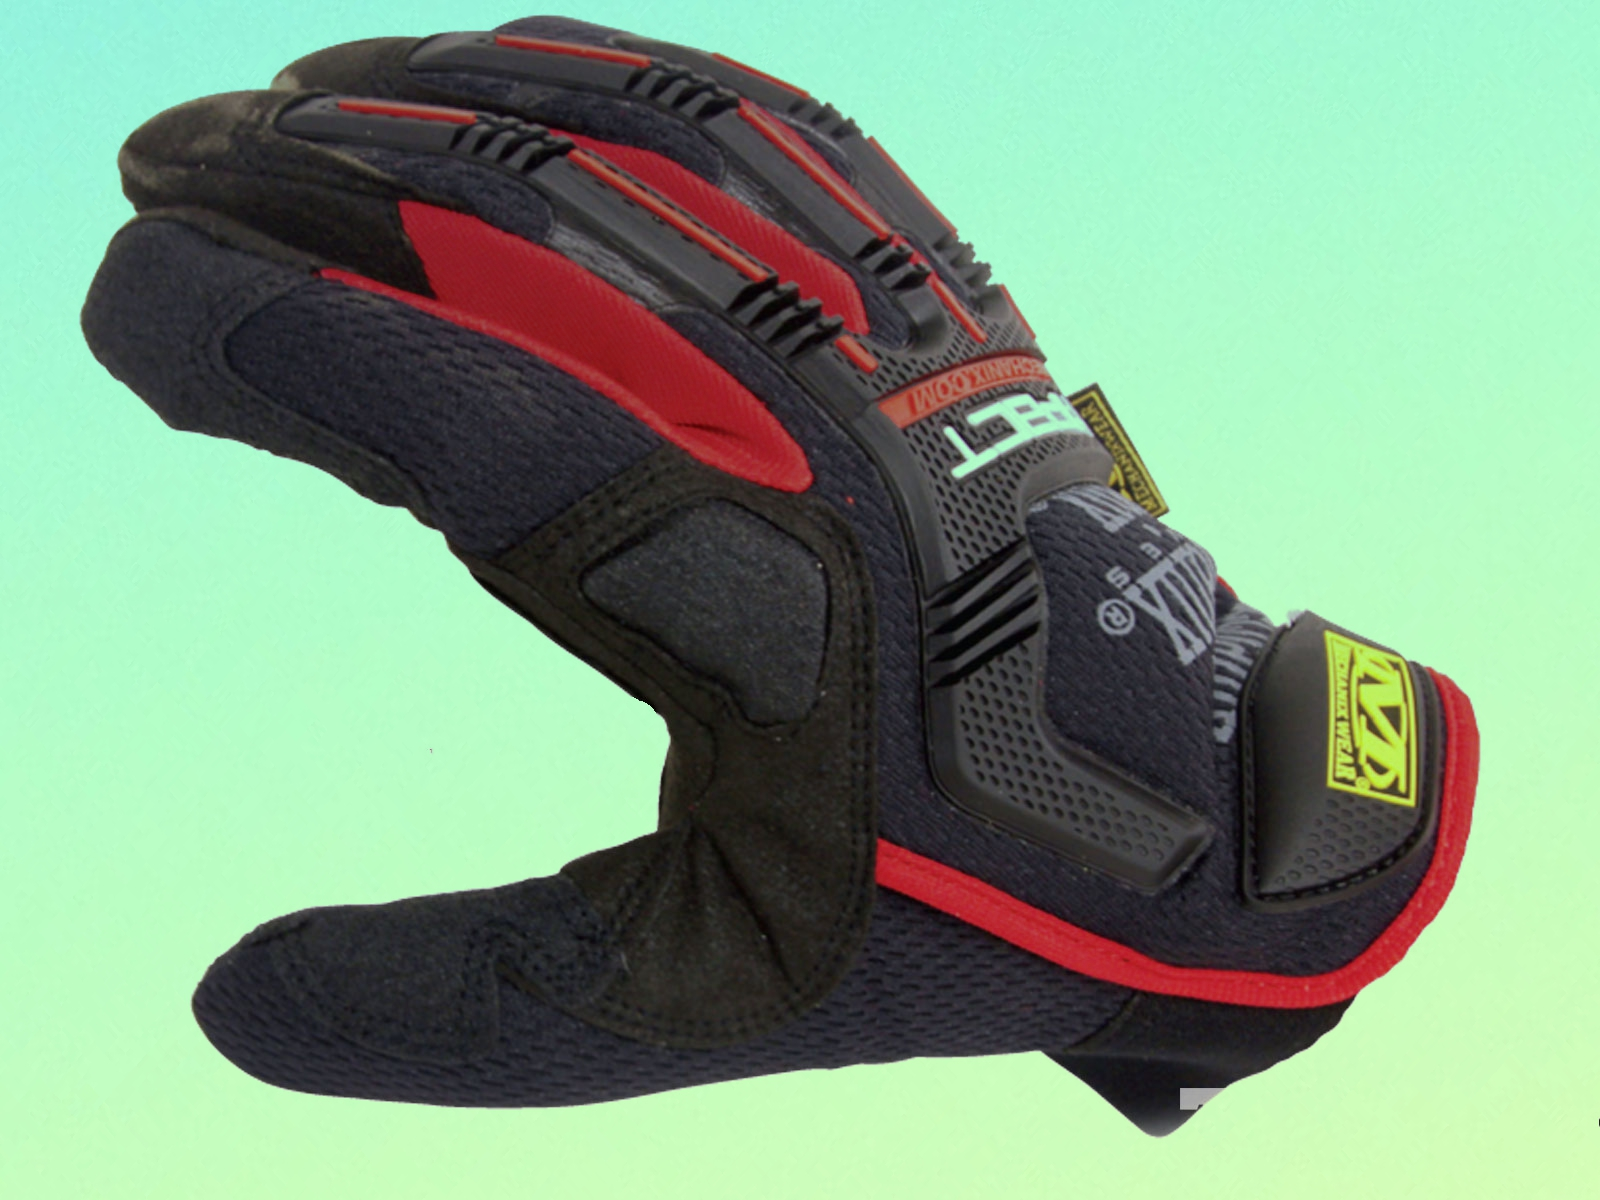 Ten Best Motorcycle Gloves - 2018 Guide